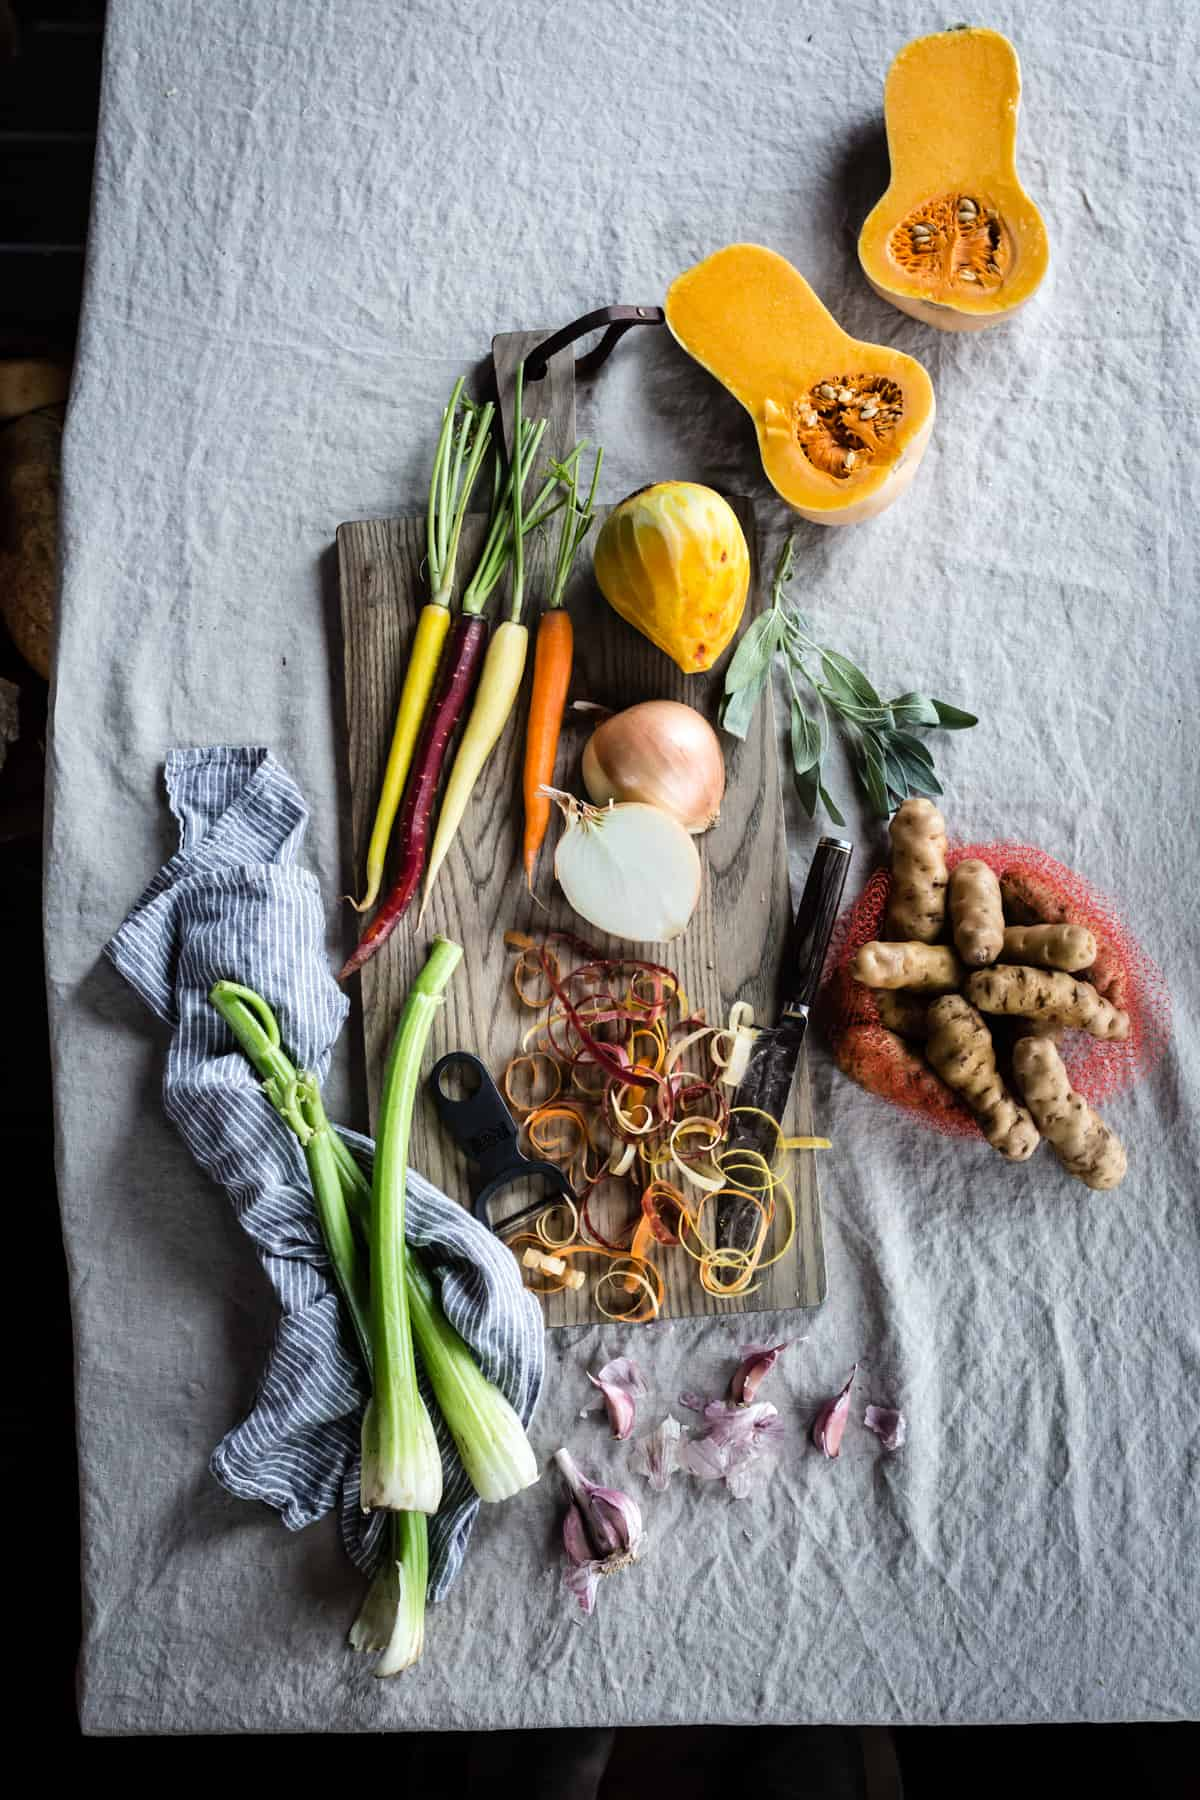 veg on table